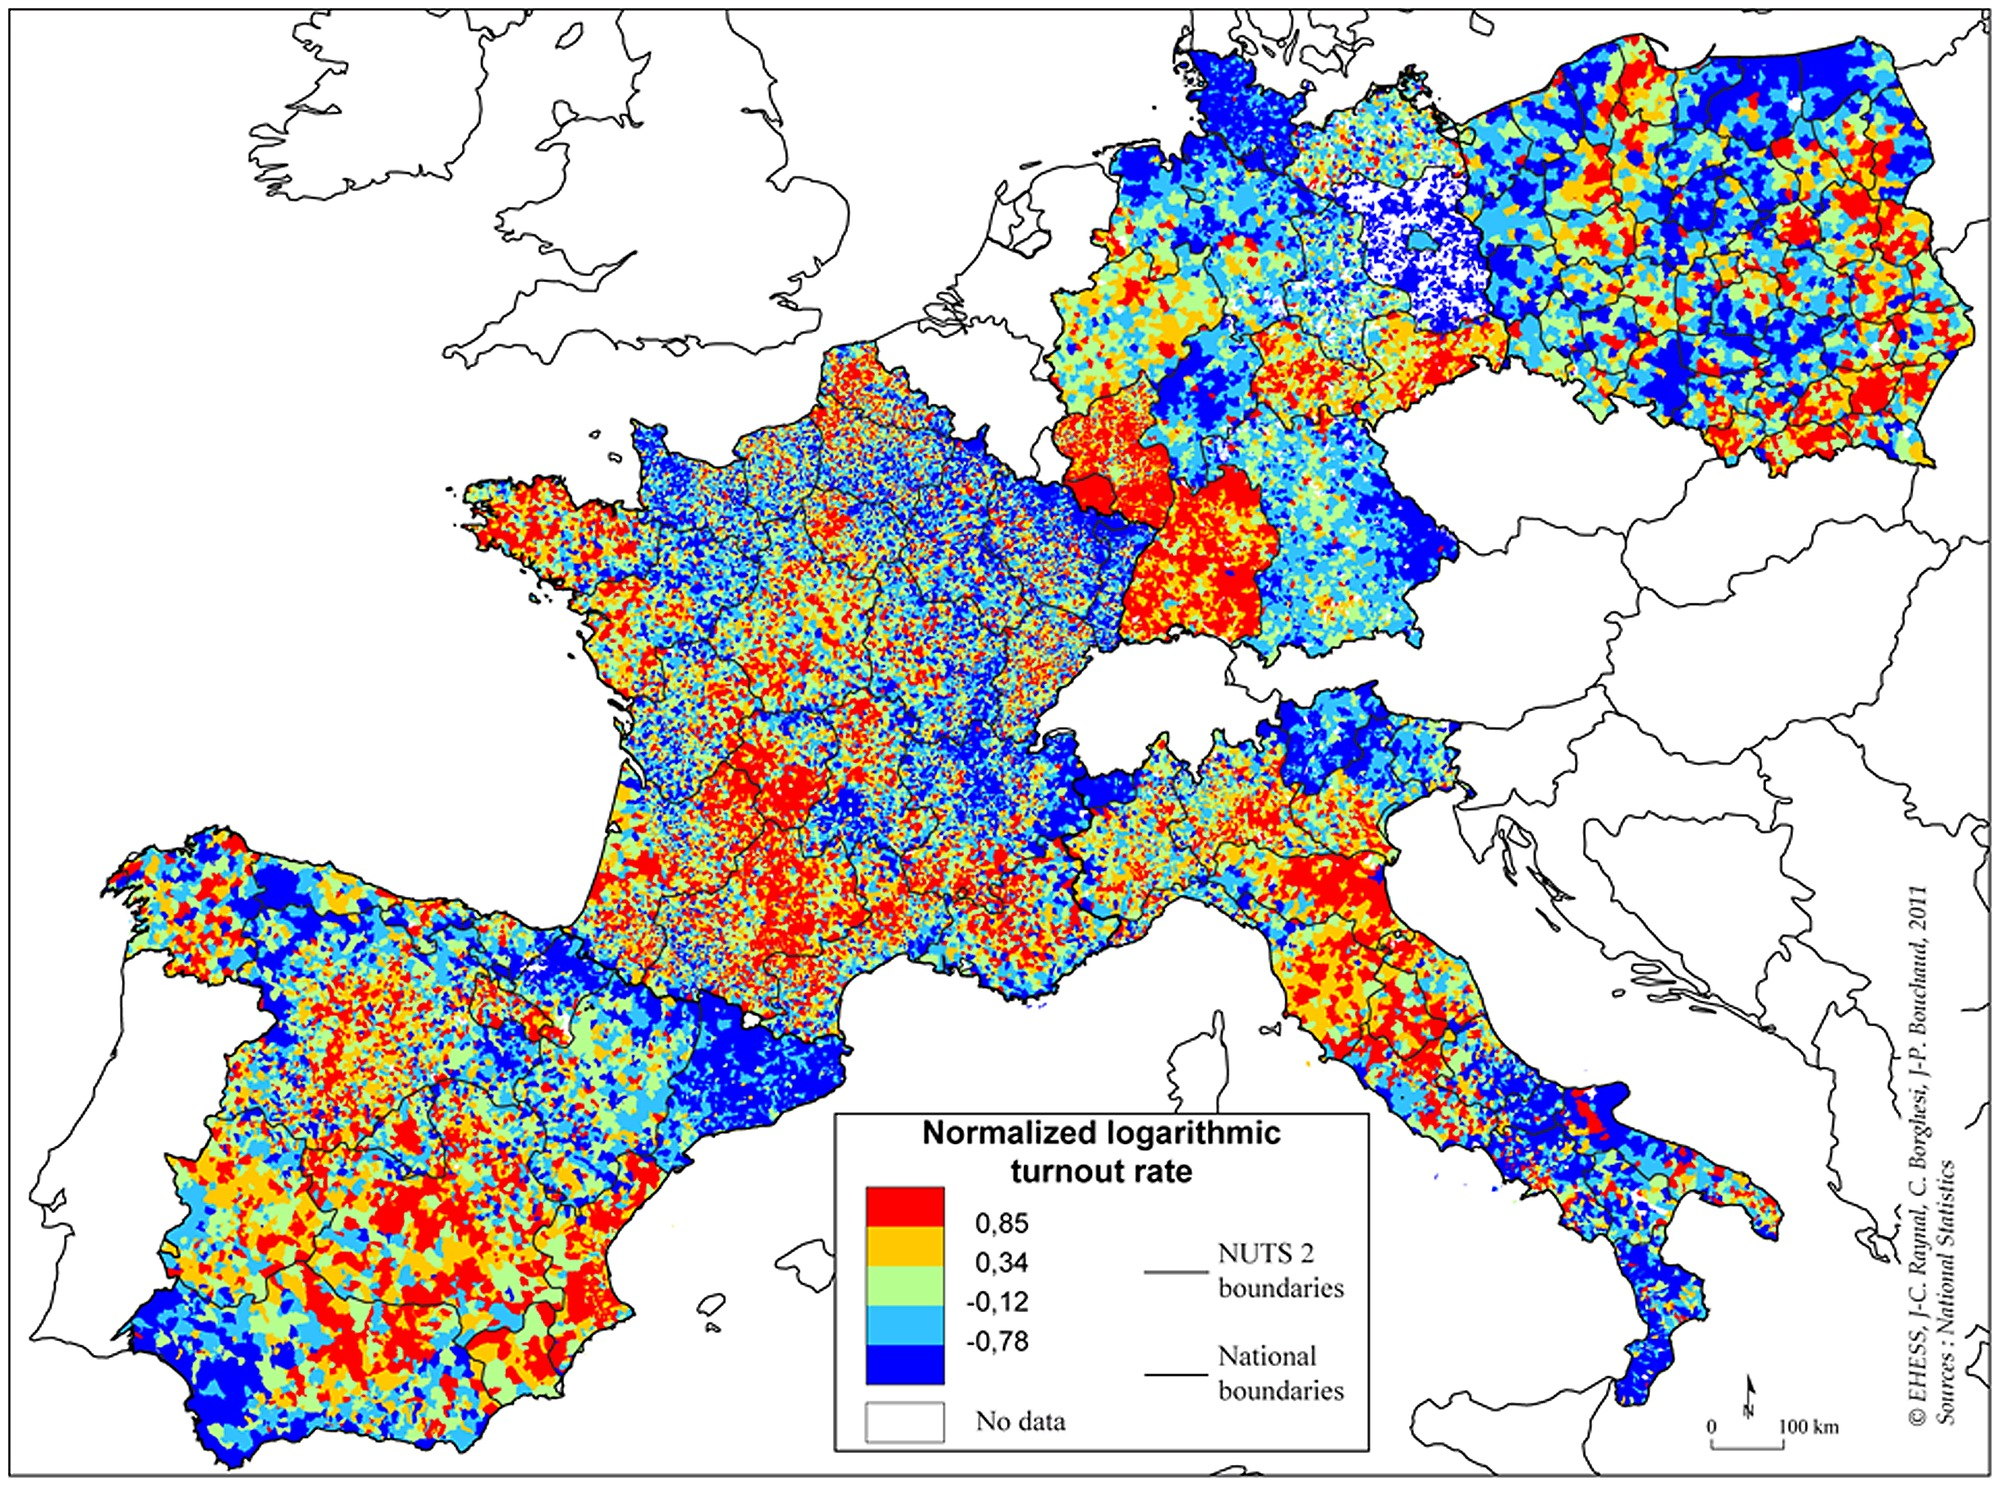 Heat Map Of The Normalized Logarithmic Turnout Rate For The - France germany map